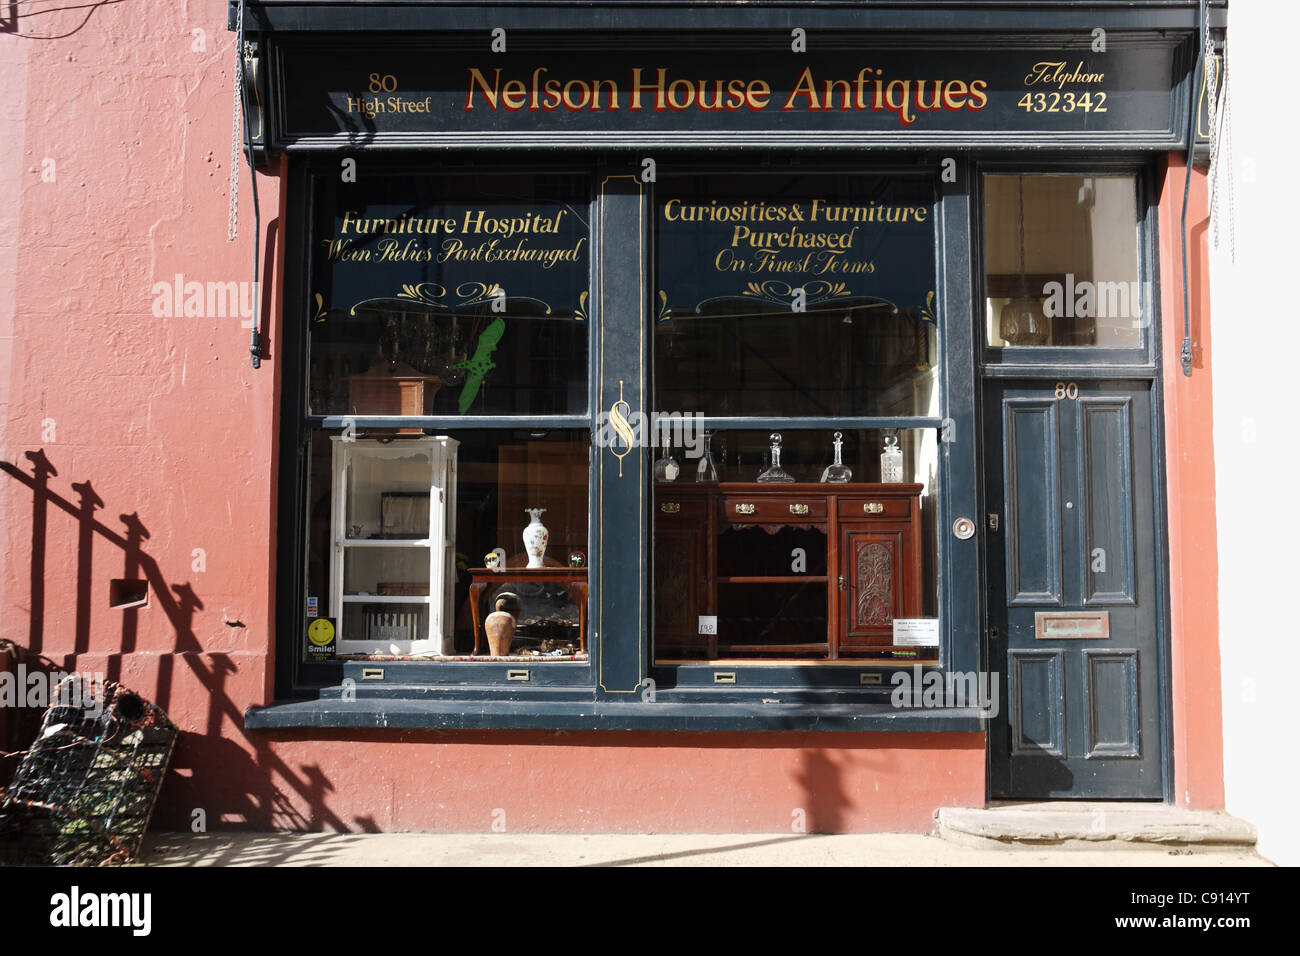 Nelson House Antiques shop Hastings old town, East Sussex, South Coast, England, UK - Stock Image